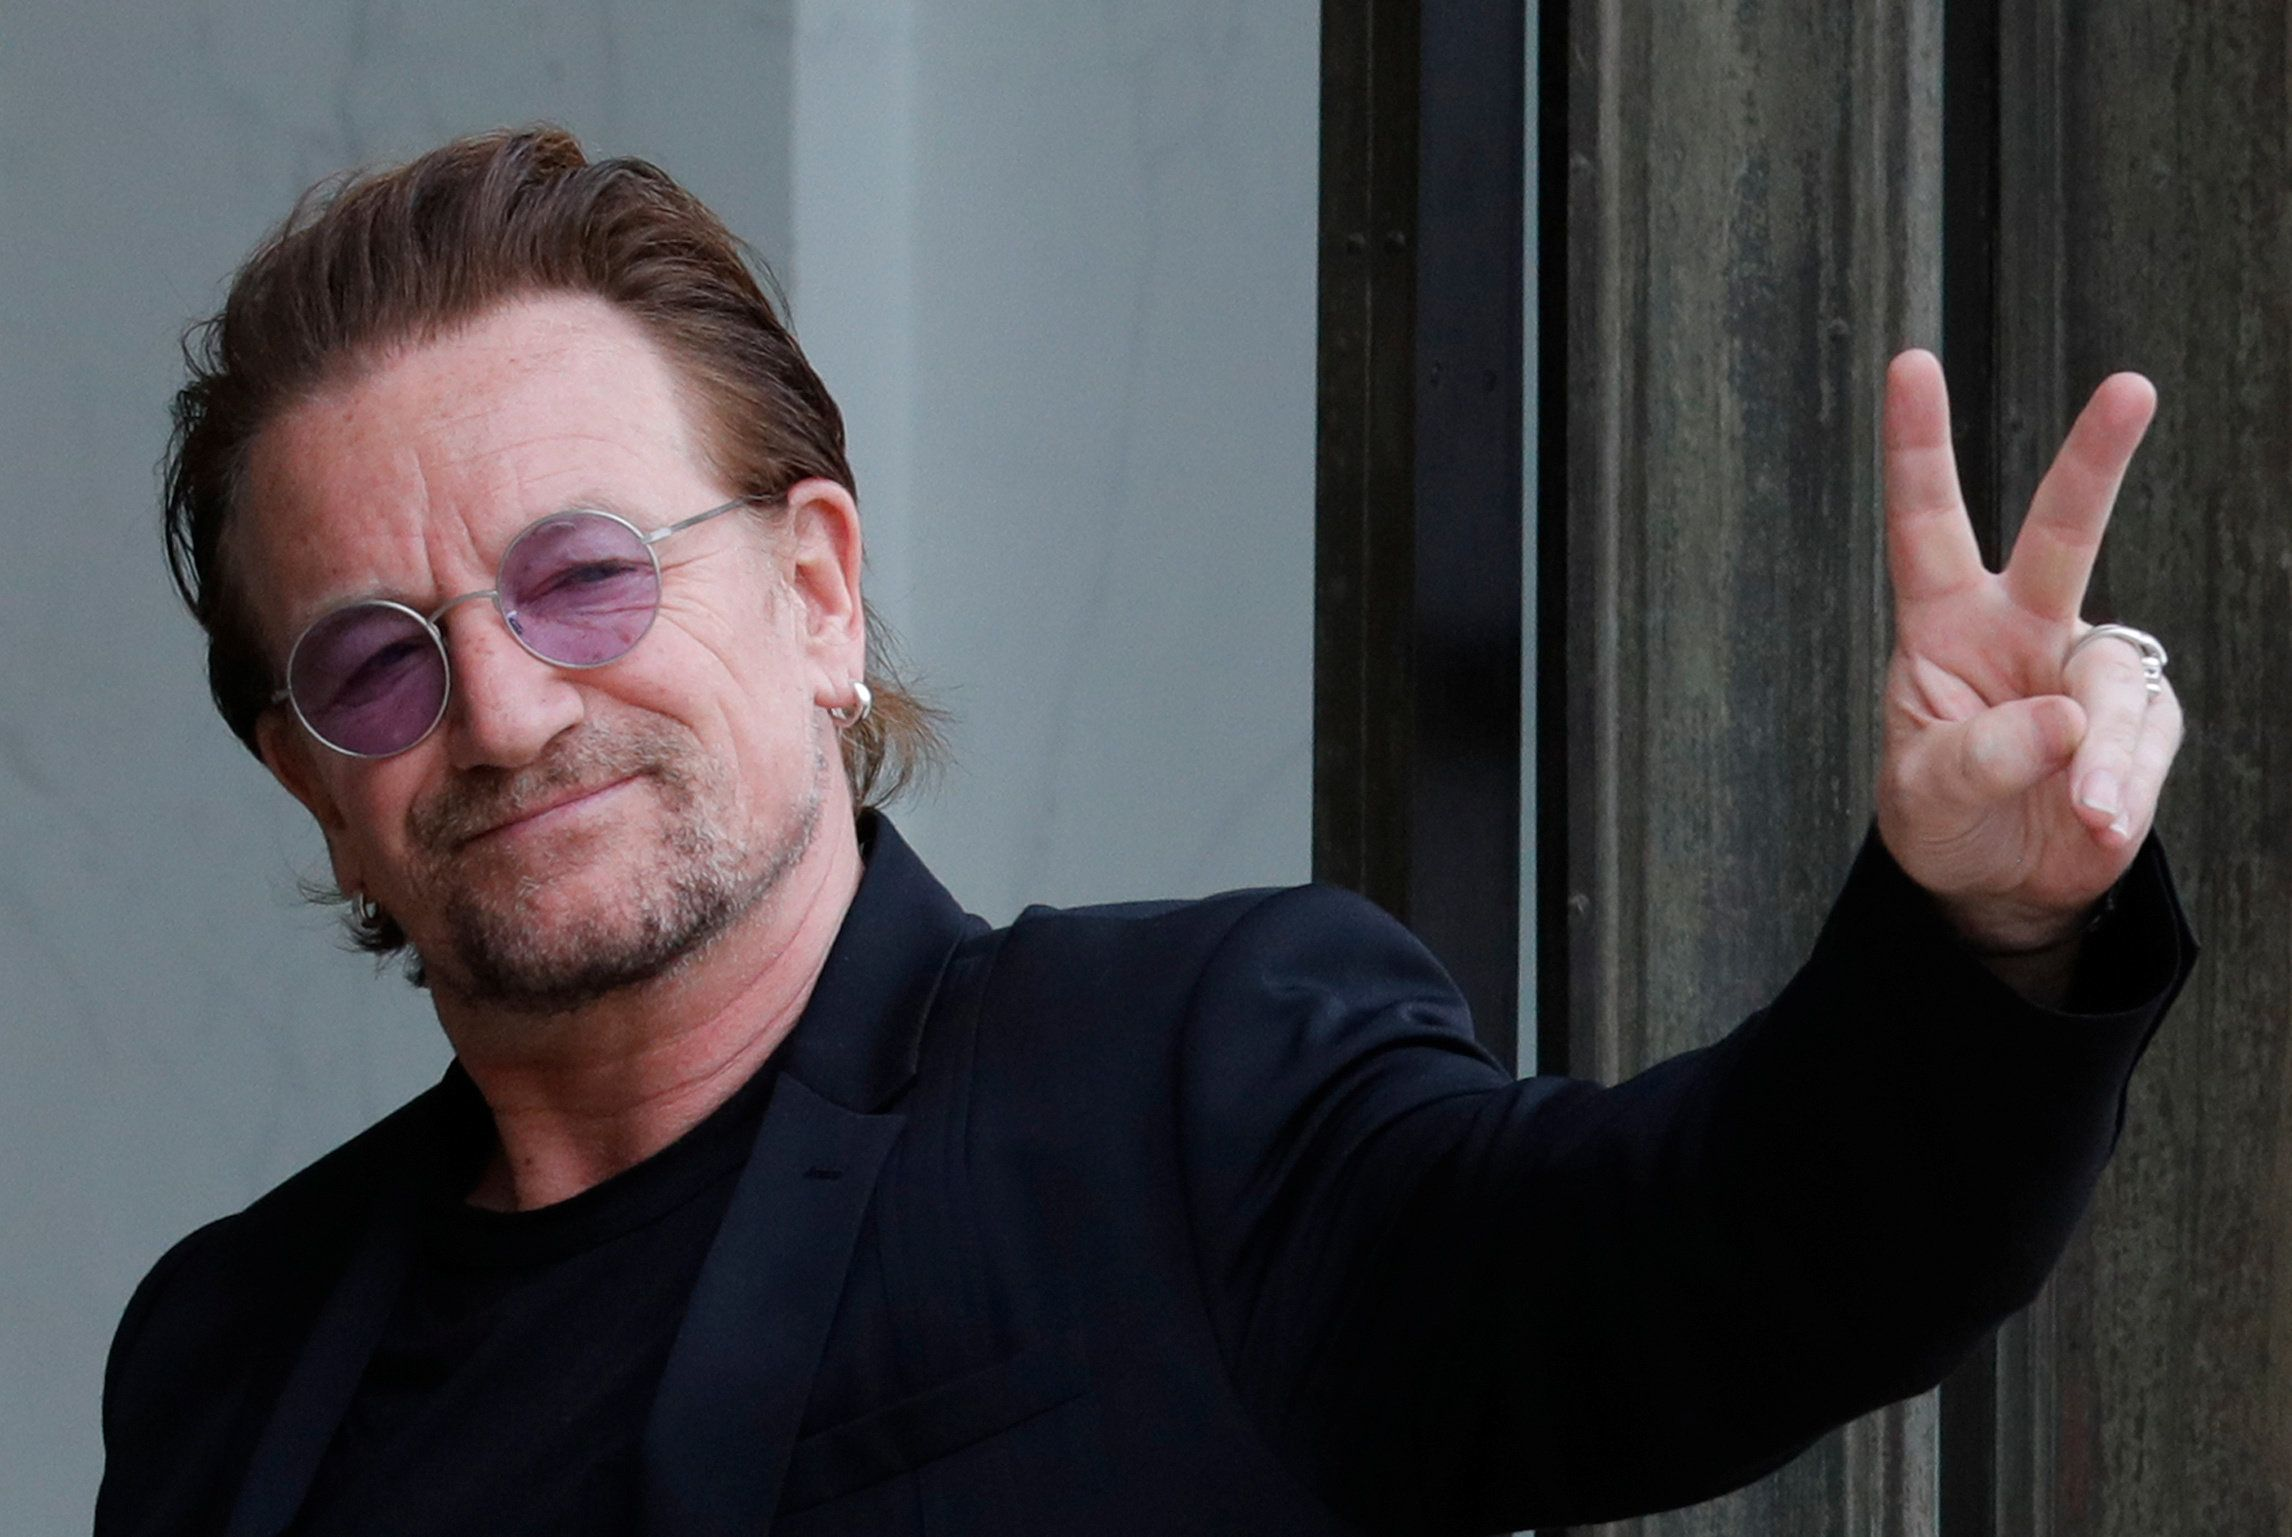 Singer Bono of Irish band U2 and co-founder of ONE organization waves as he arrives at the Elysee Palace in Paris, France, July 24, 2017.     REUTERS/Philippe Wojazer